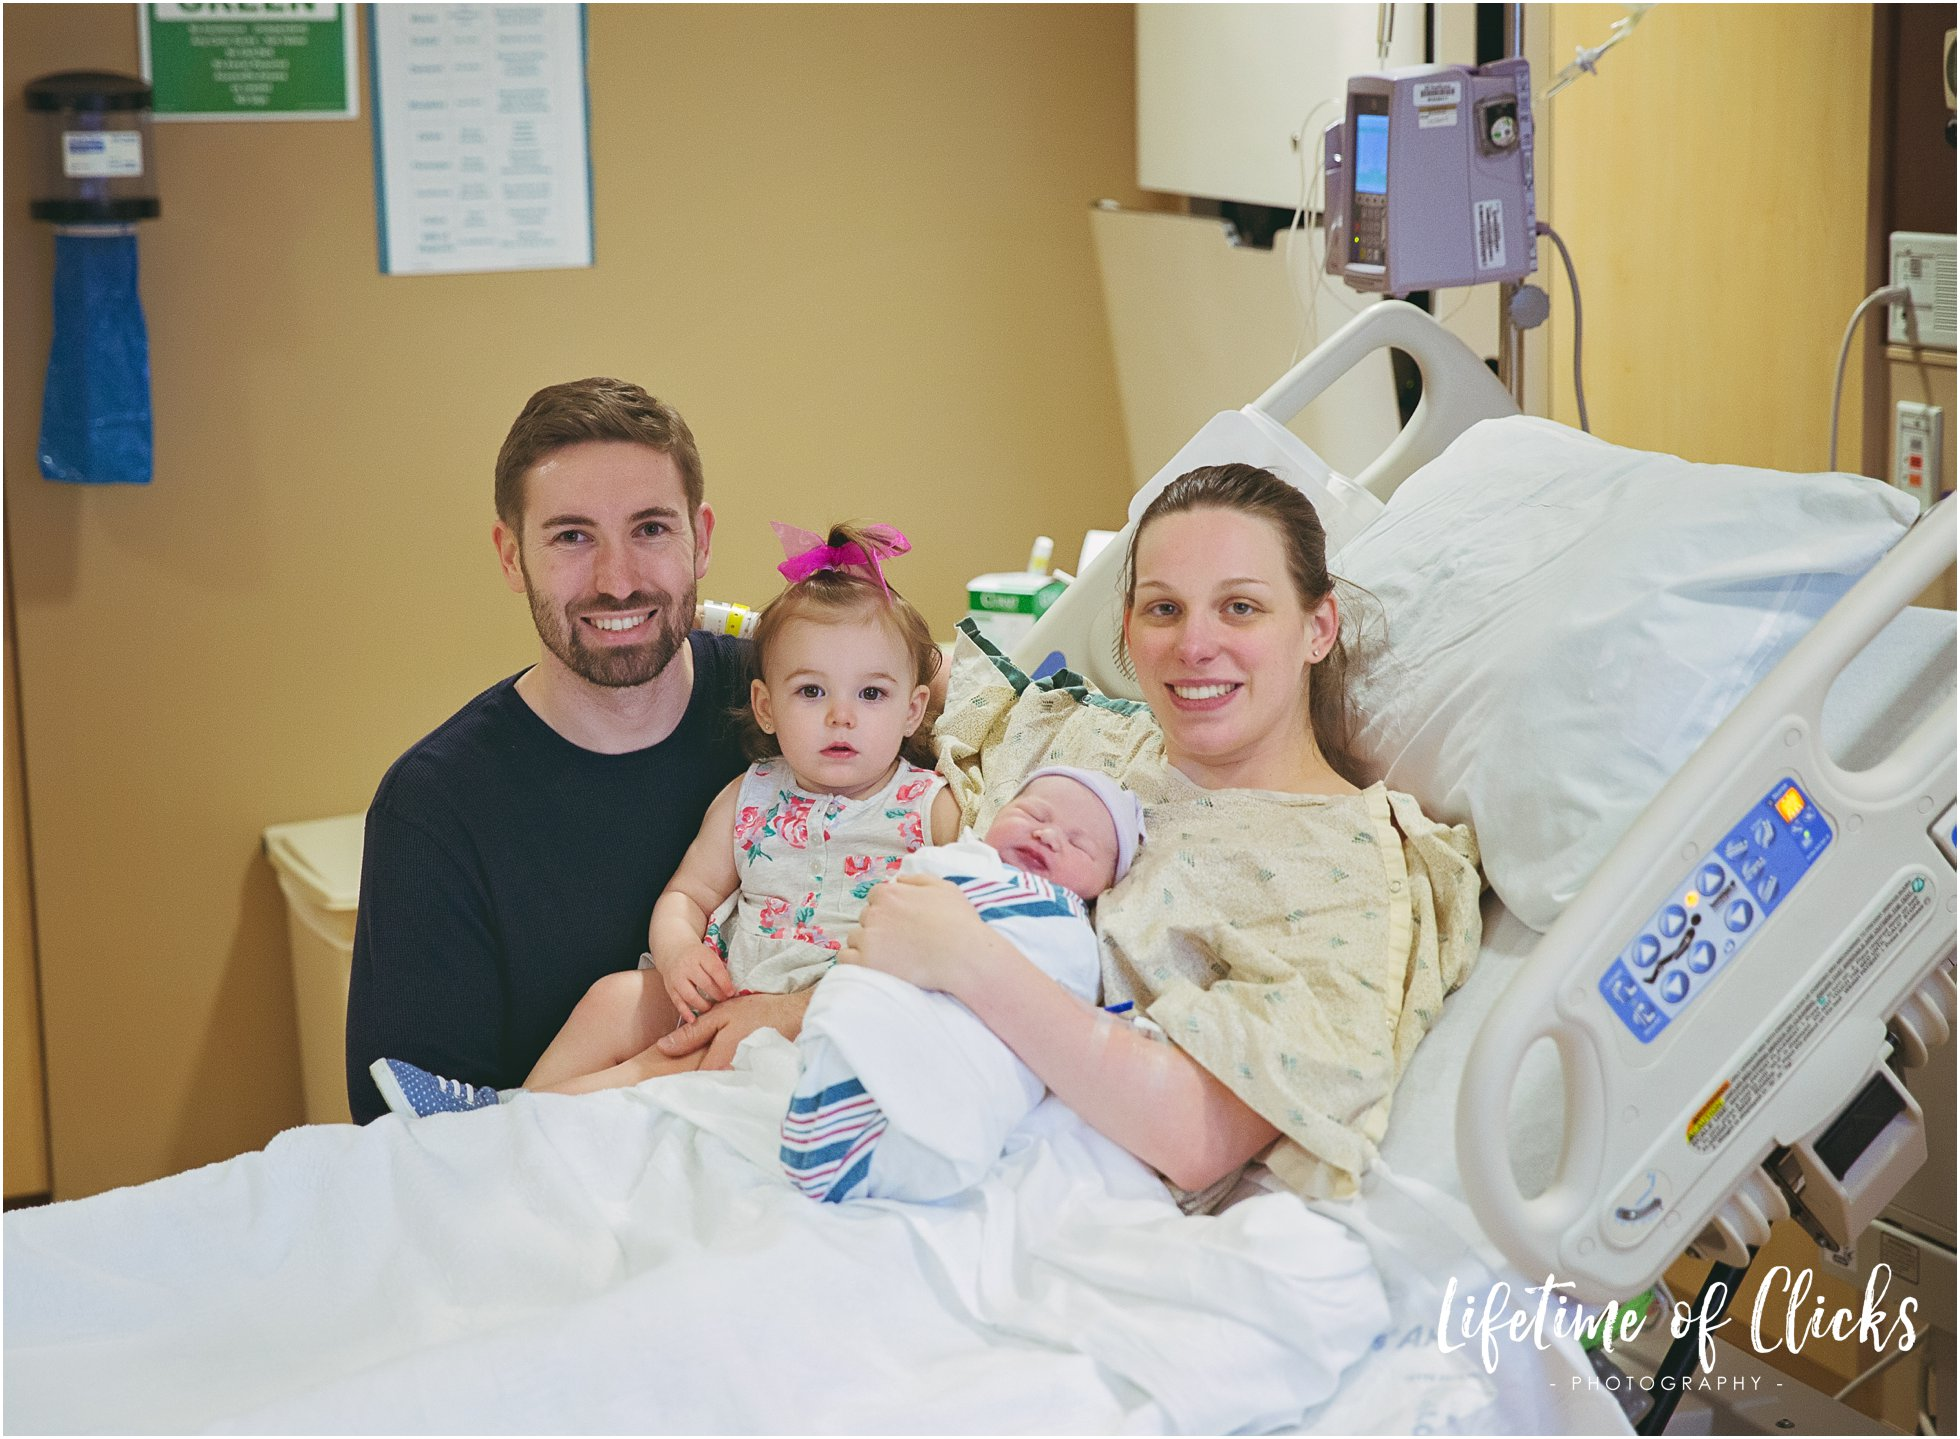 Family portrait after birth of newborn baby